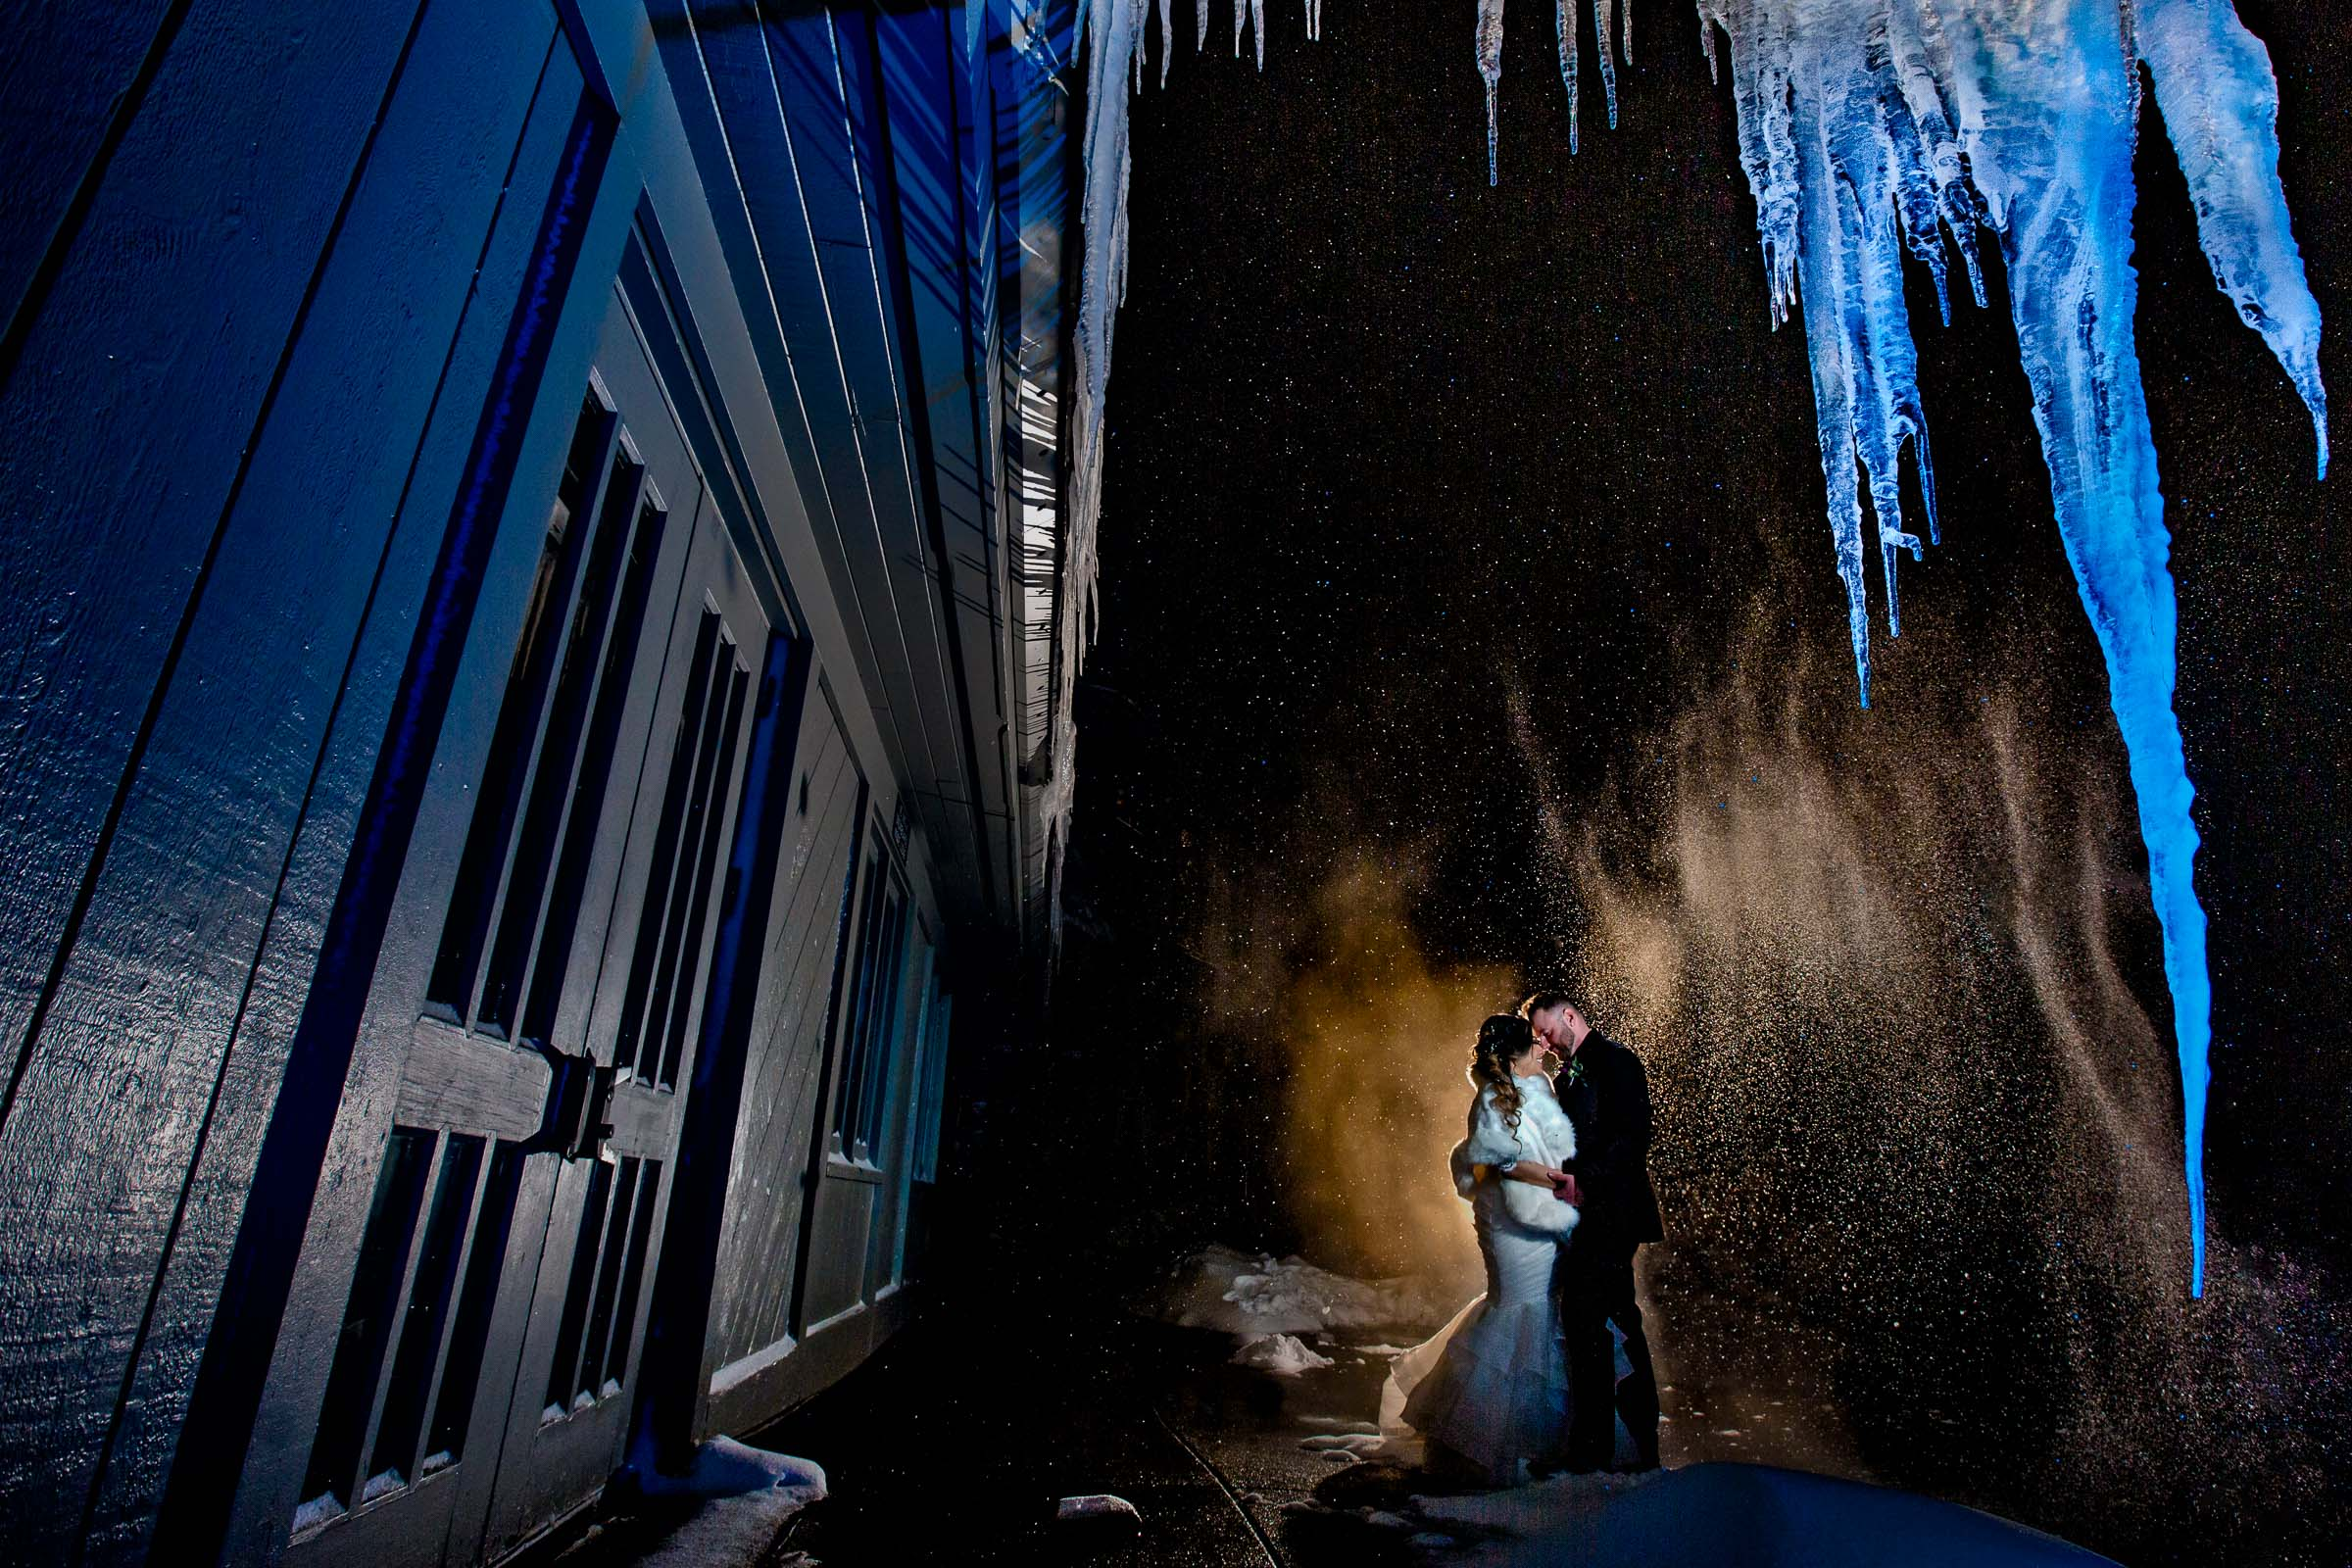 Creative Timberline Lodge Wedding portrait of bride and groom with snow and colorful icicles outside their Ullman Hall reception